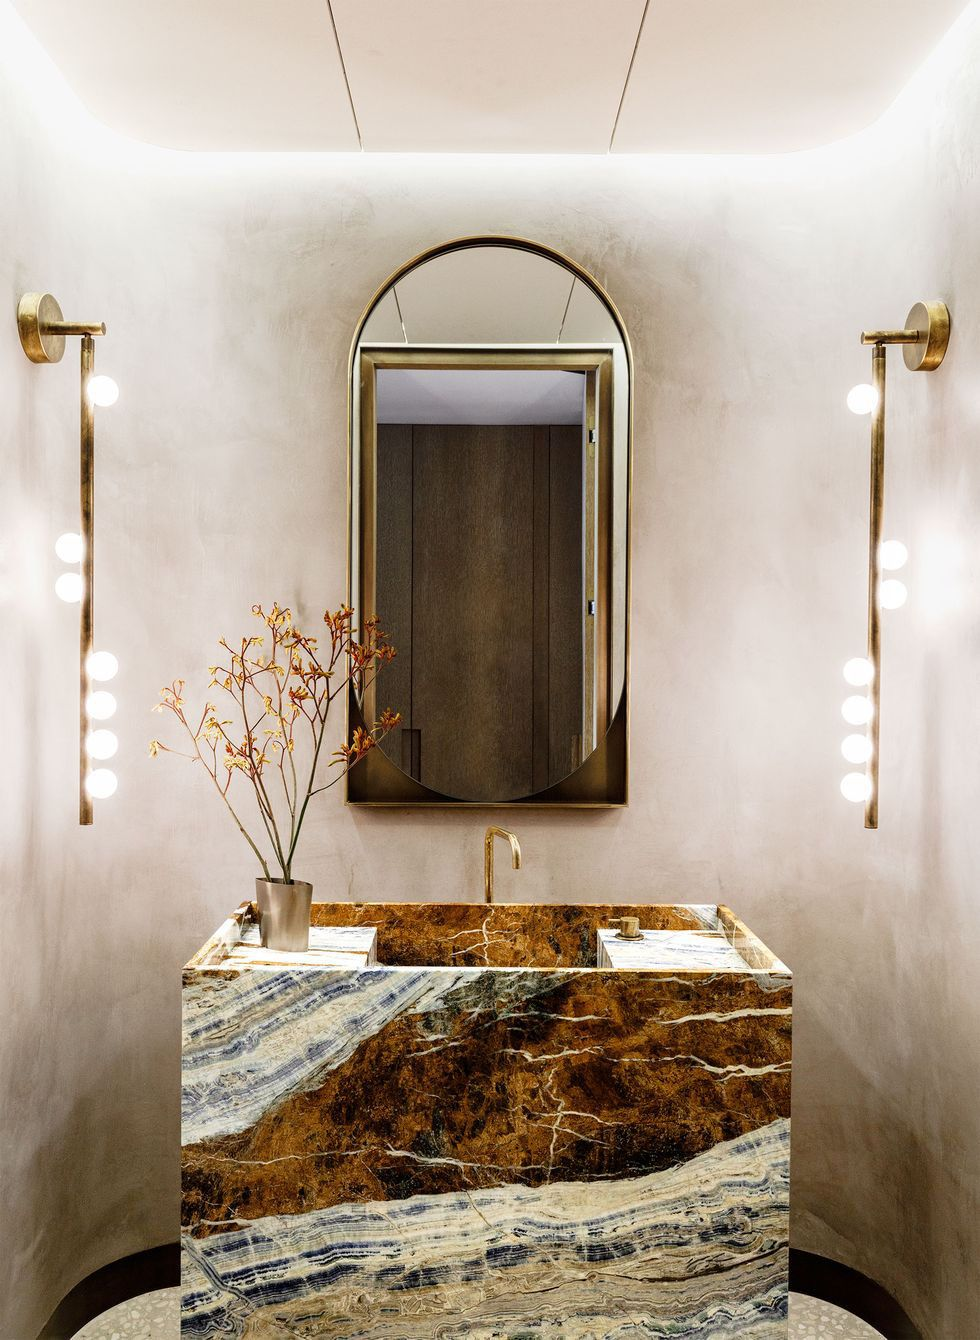 These Are The Most Beautiful Bathrooms We Ve Ever Seen In 2021 Elle Decor Beautiful Bathrooms Small Bathroom Elle decor best bathrooms